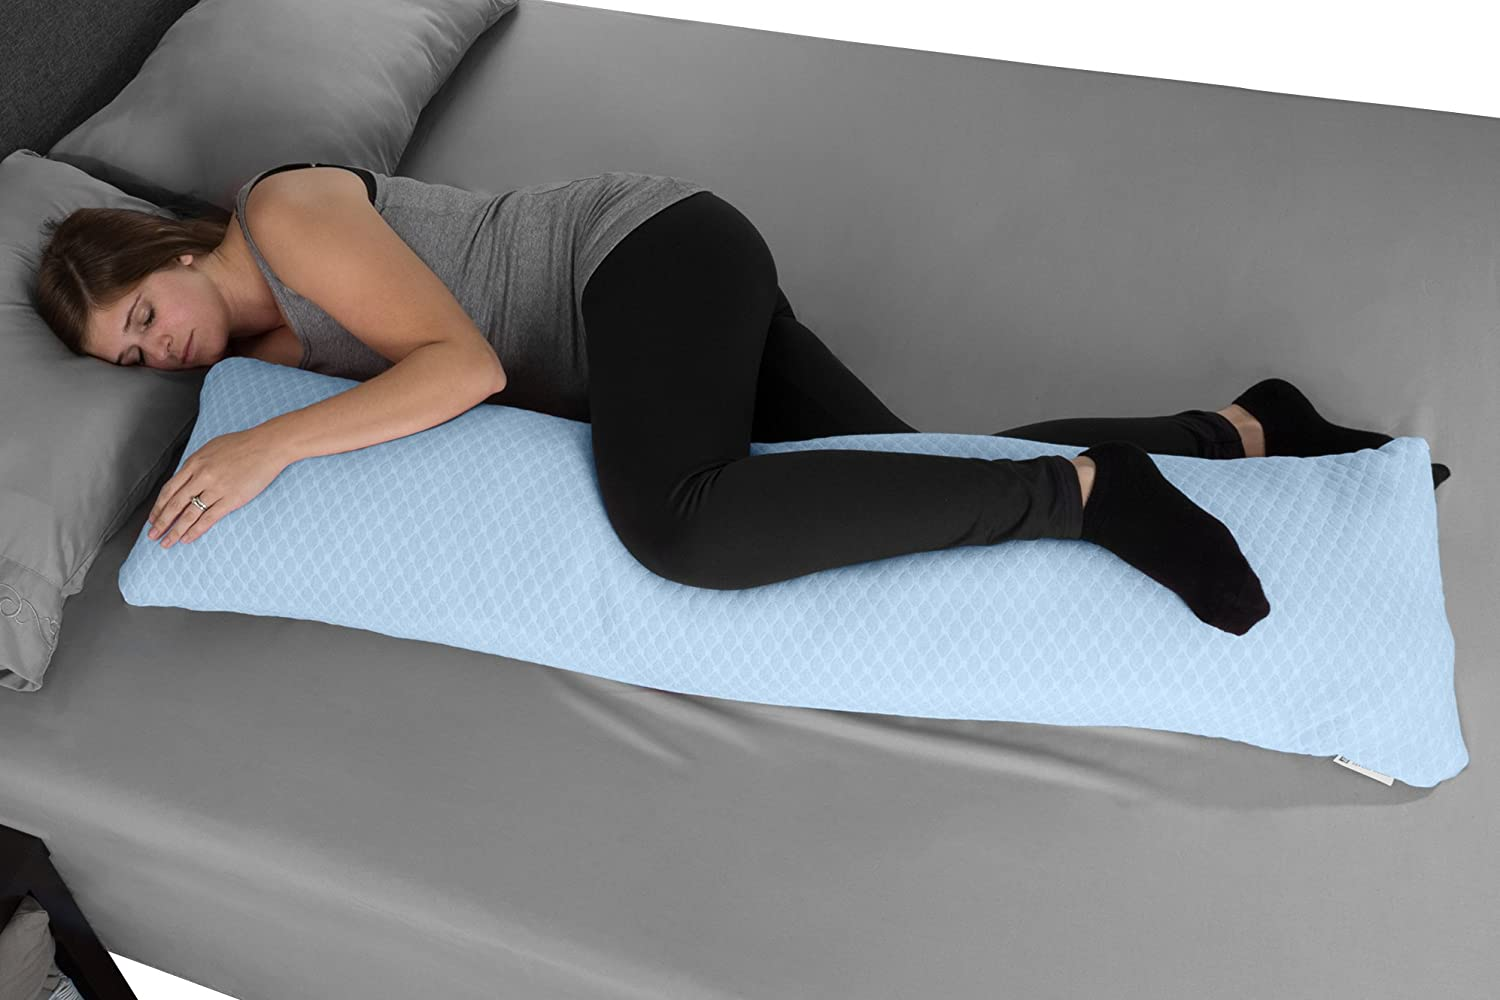 Amazon Com Memory Foam Body Pillow For Side Sleepers Back Pain